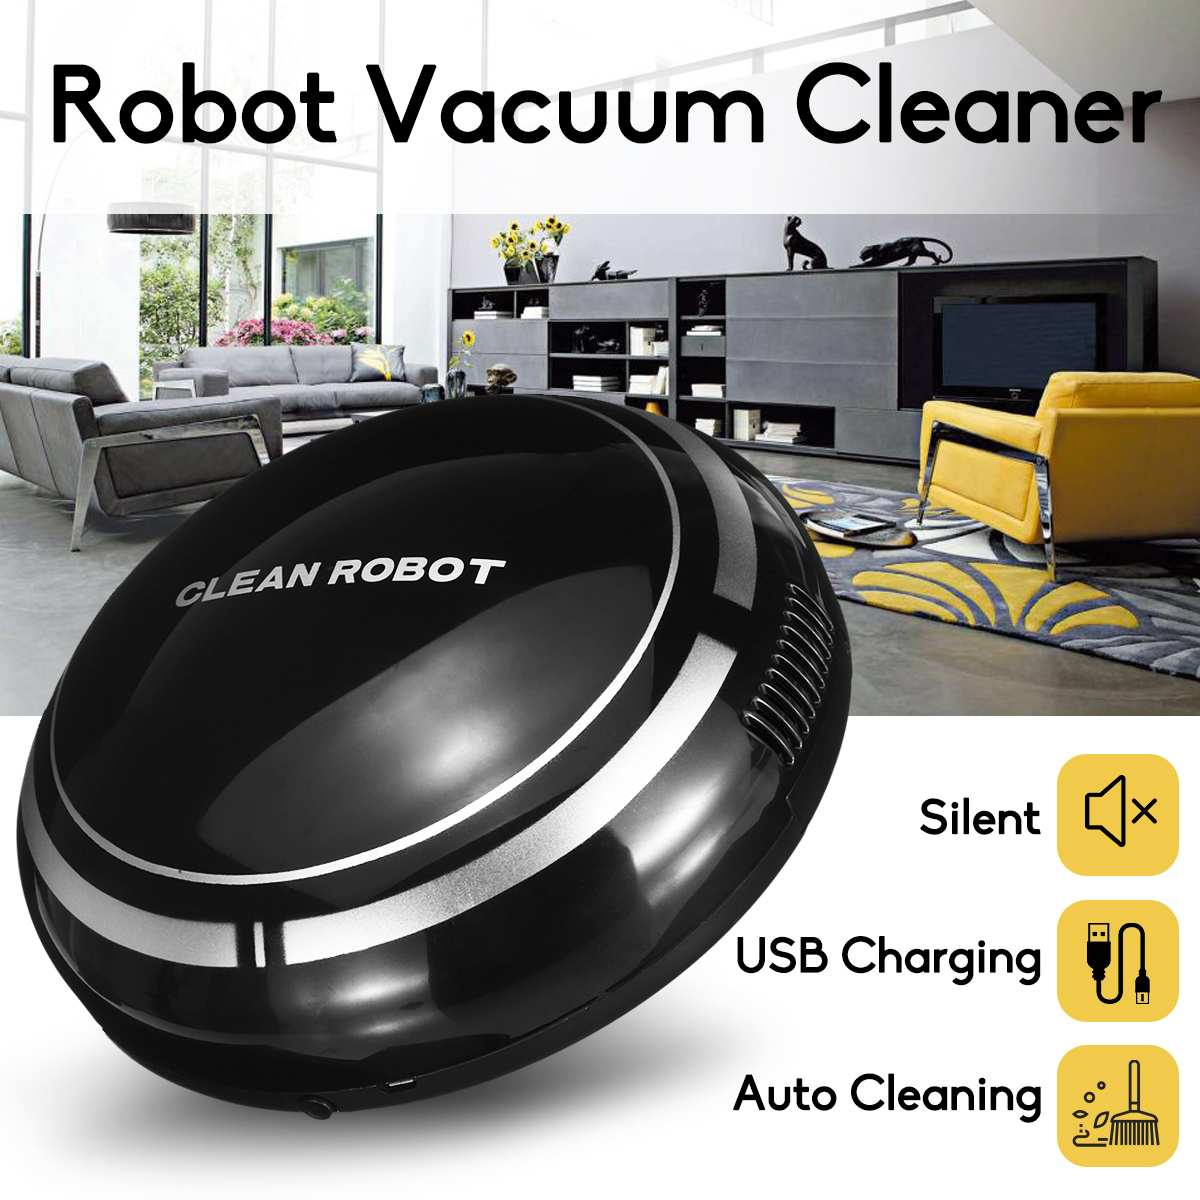 H60e629cbbc794a75892cb3b28b0a3832a Smart Automatic Robot Vacuum Cleaning Machine Intelligent Floor Sweeping Dust Catcher Carpet Cleaner For Home Automatic Cleaning